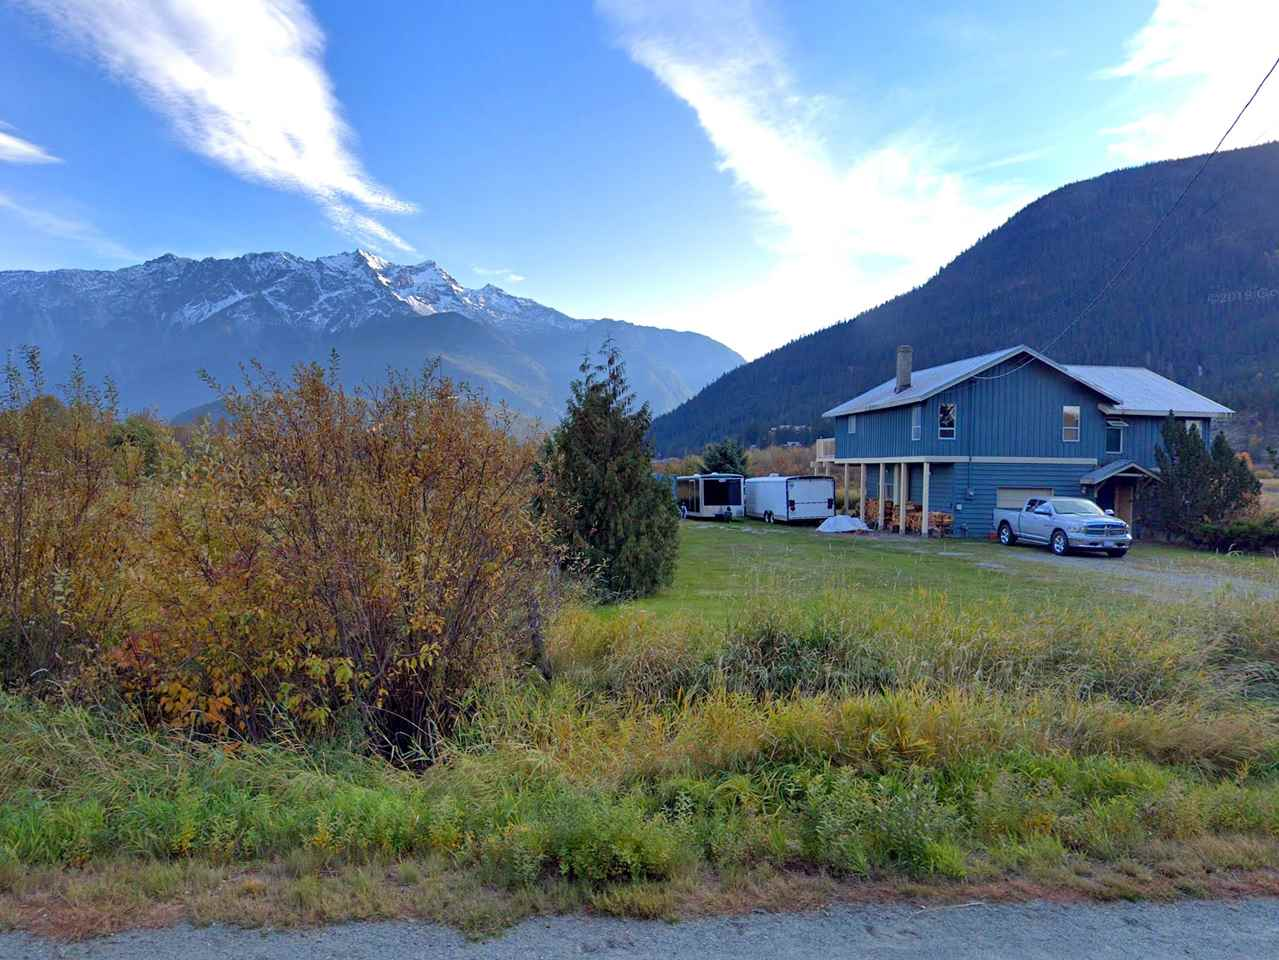 1400 COLLINS ROAD - Pemberton House with Acreage for sale, 2 Bedrooms (R2528962)